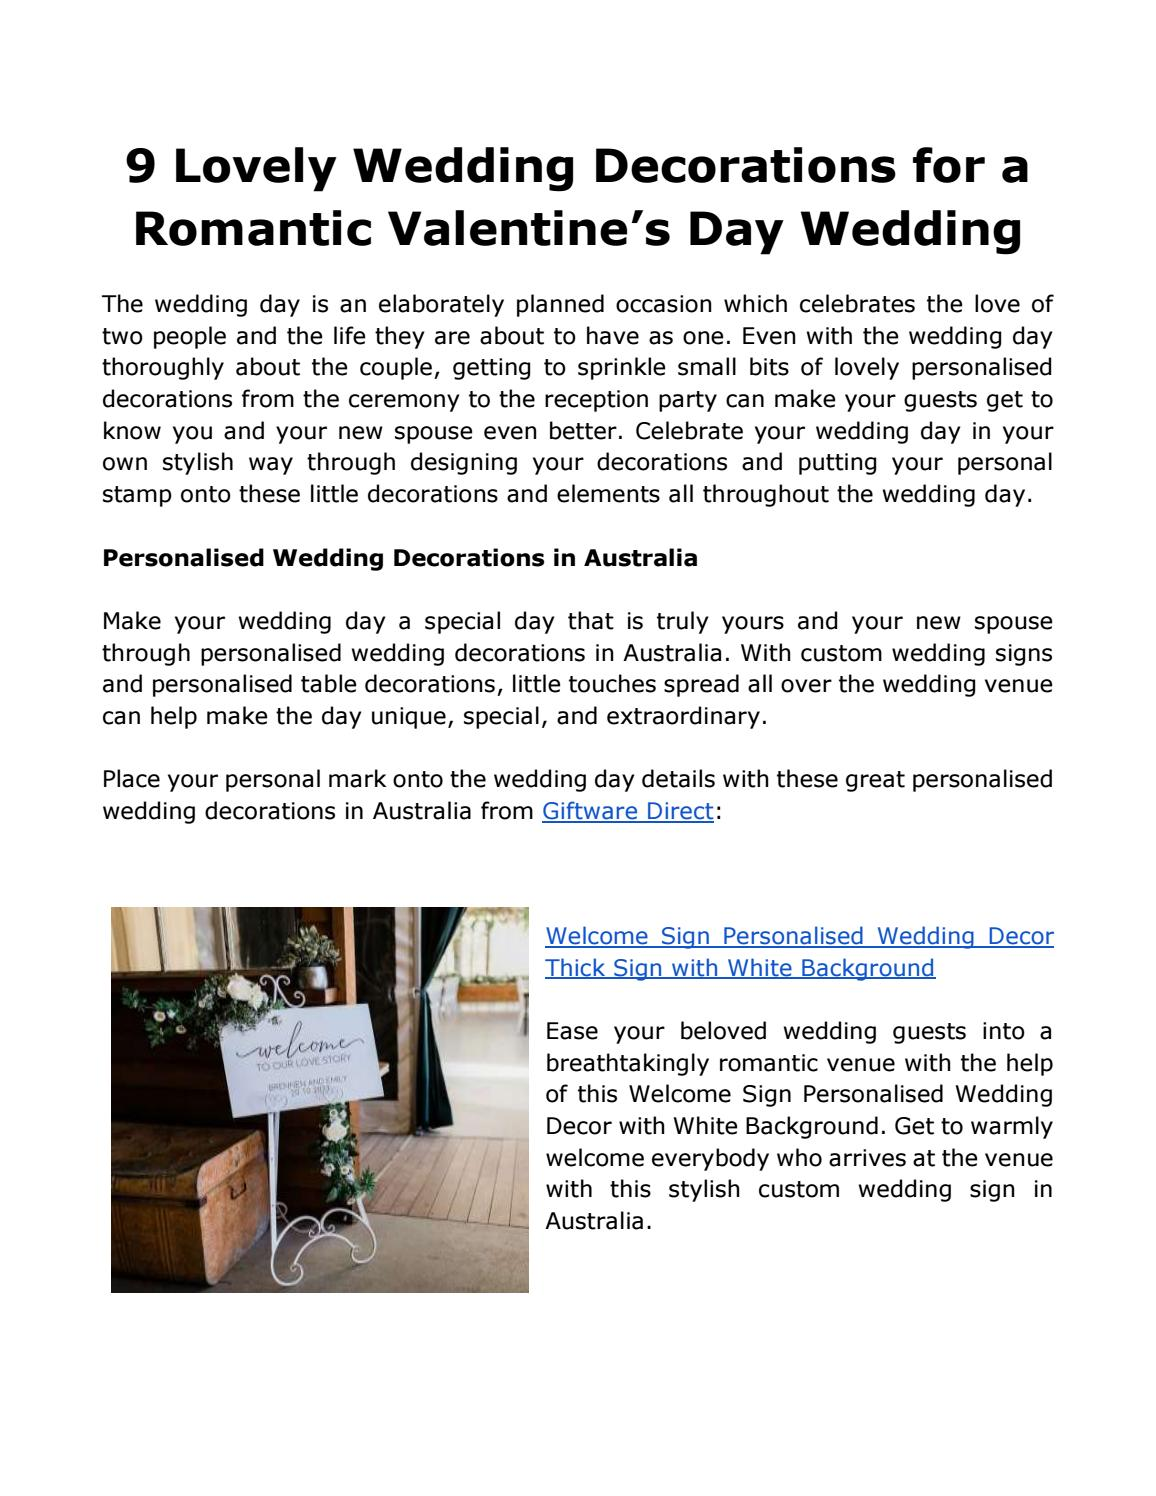 9 Lovely Wedding Decorations For A Romantic Valentine S Day Wedding By Giftware Direct Issuu